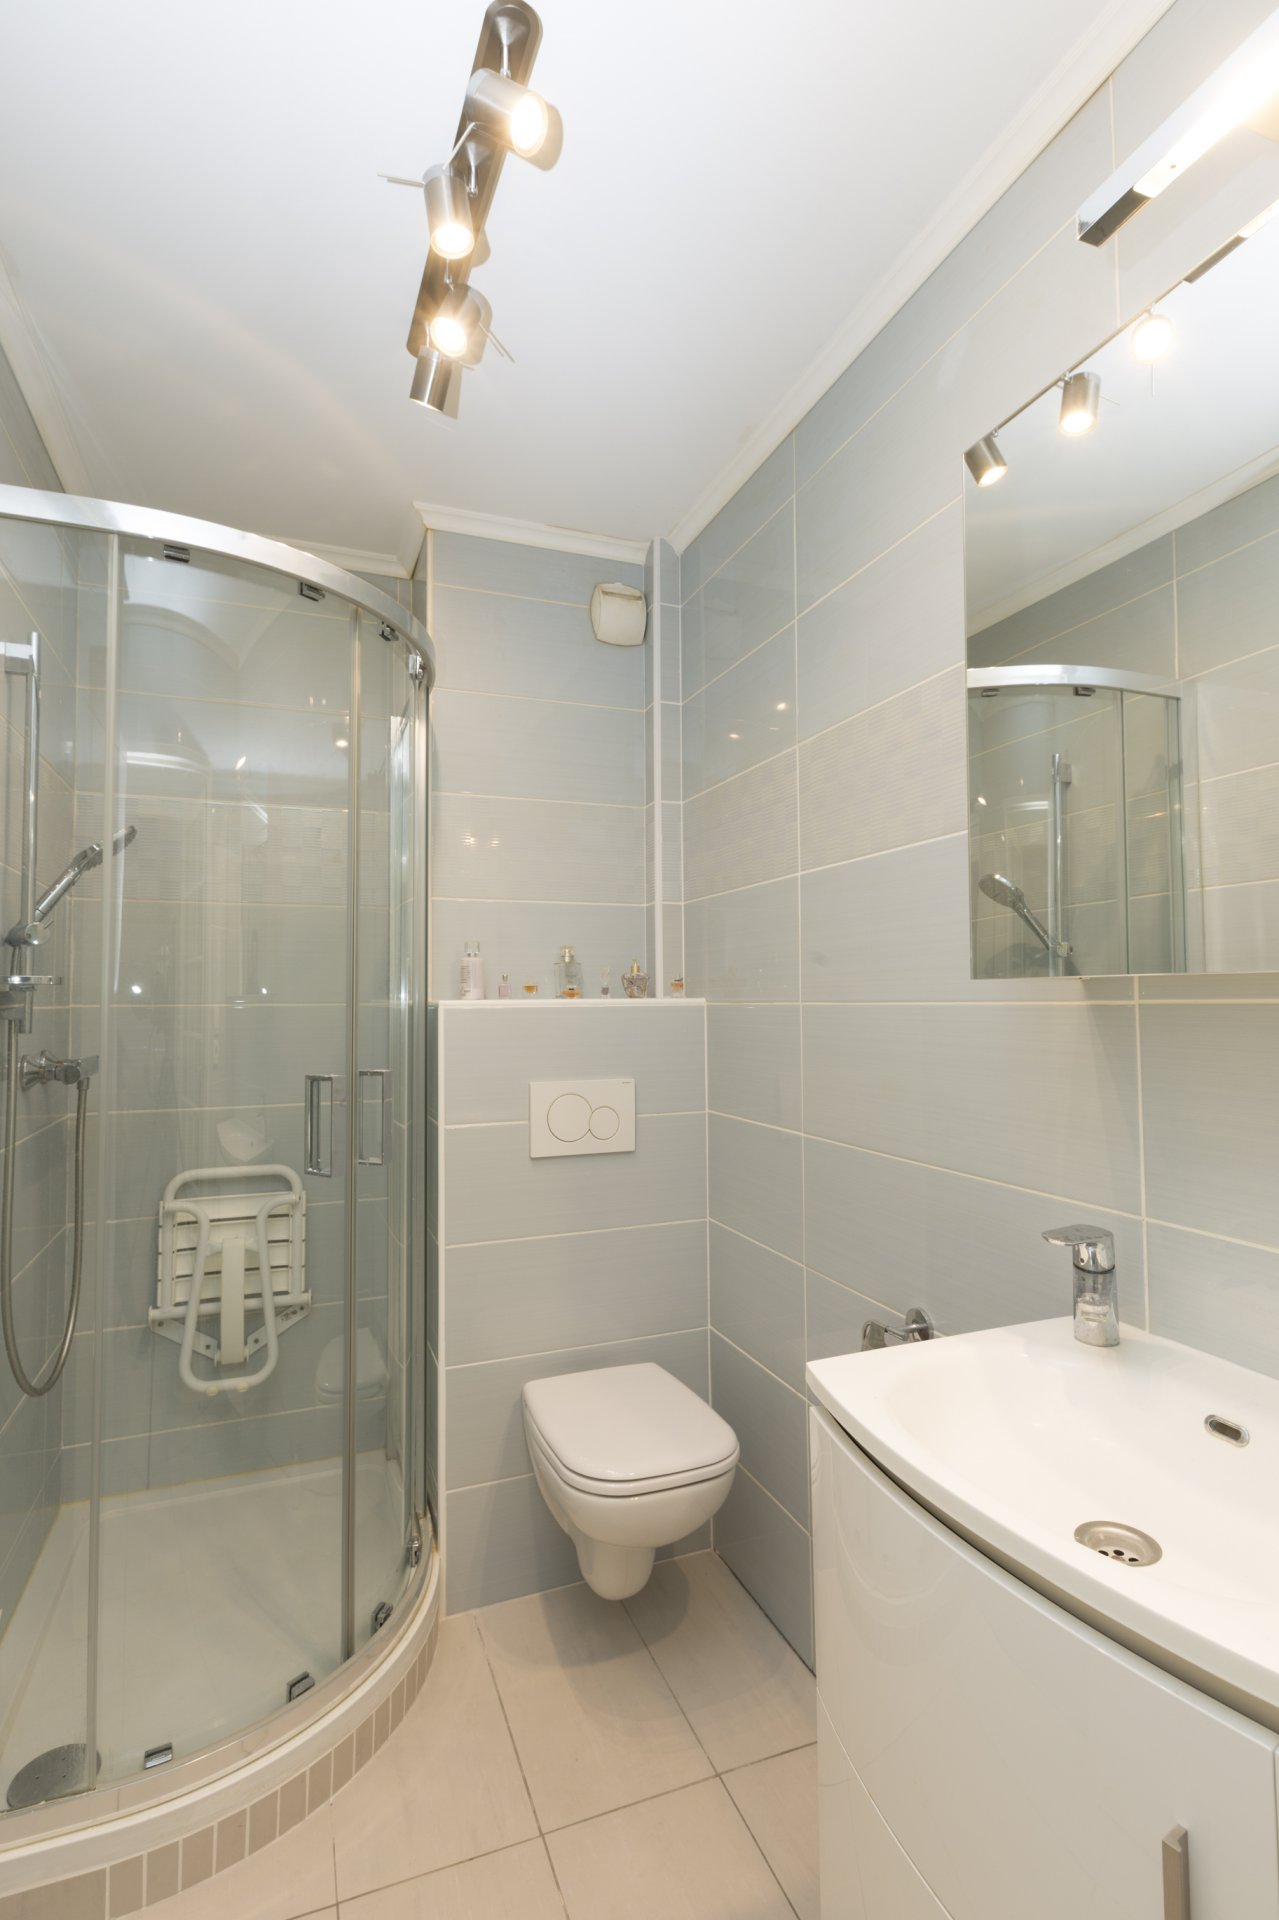 3 bed apt in sought-after residence with swimming pool